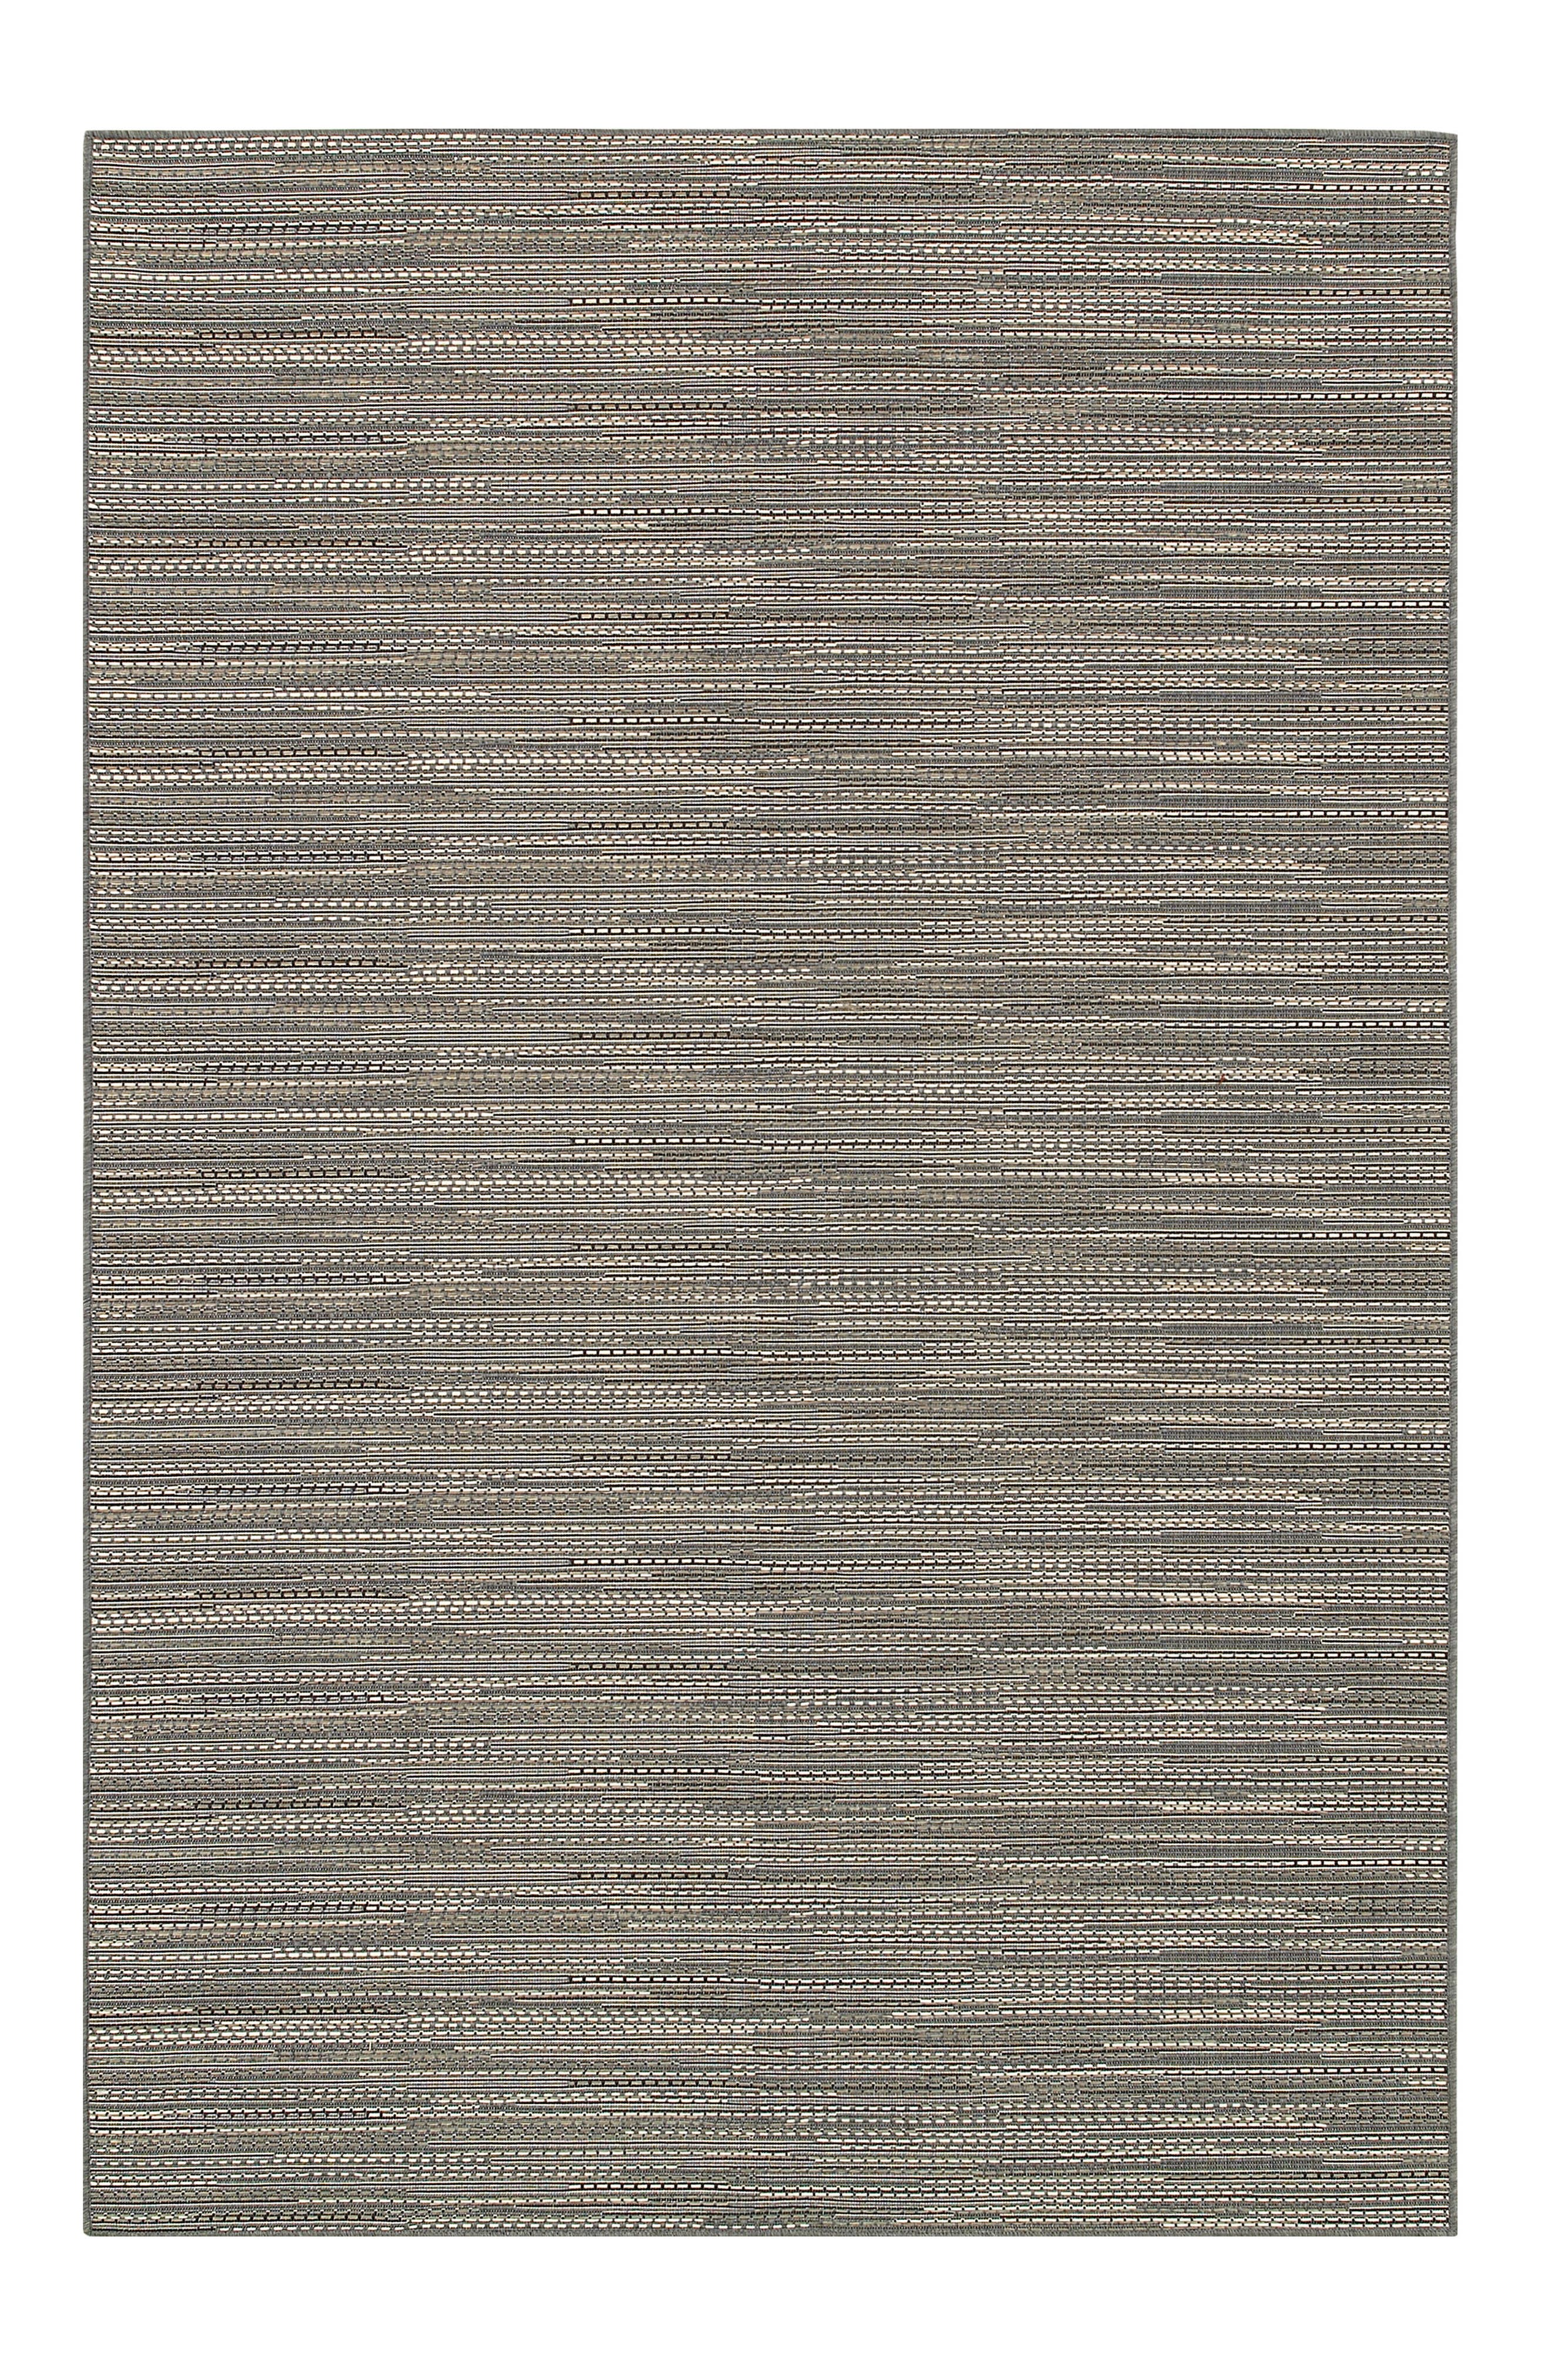 Monaco Larvotto Indoor/Outdoor Rug,                             Main thumbnail 1, color,                             020